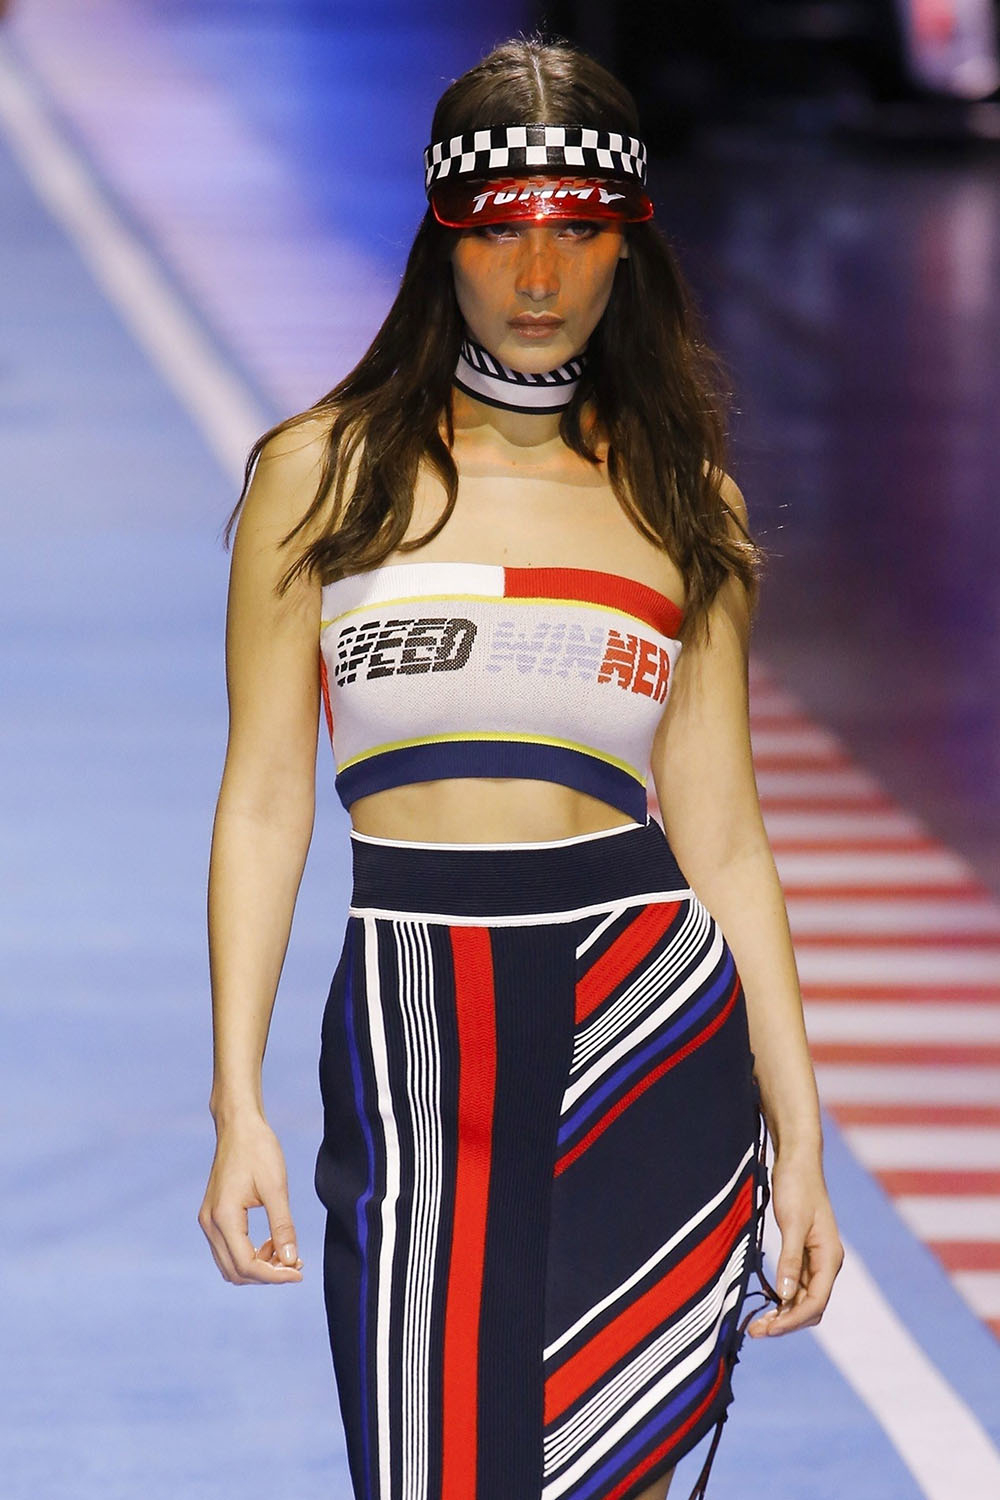 Bella Hadid at The Tommy Hilfiger fashion show in Milan